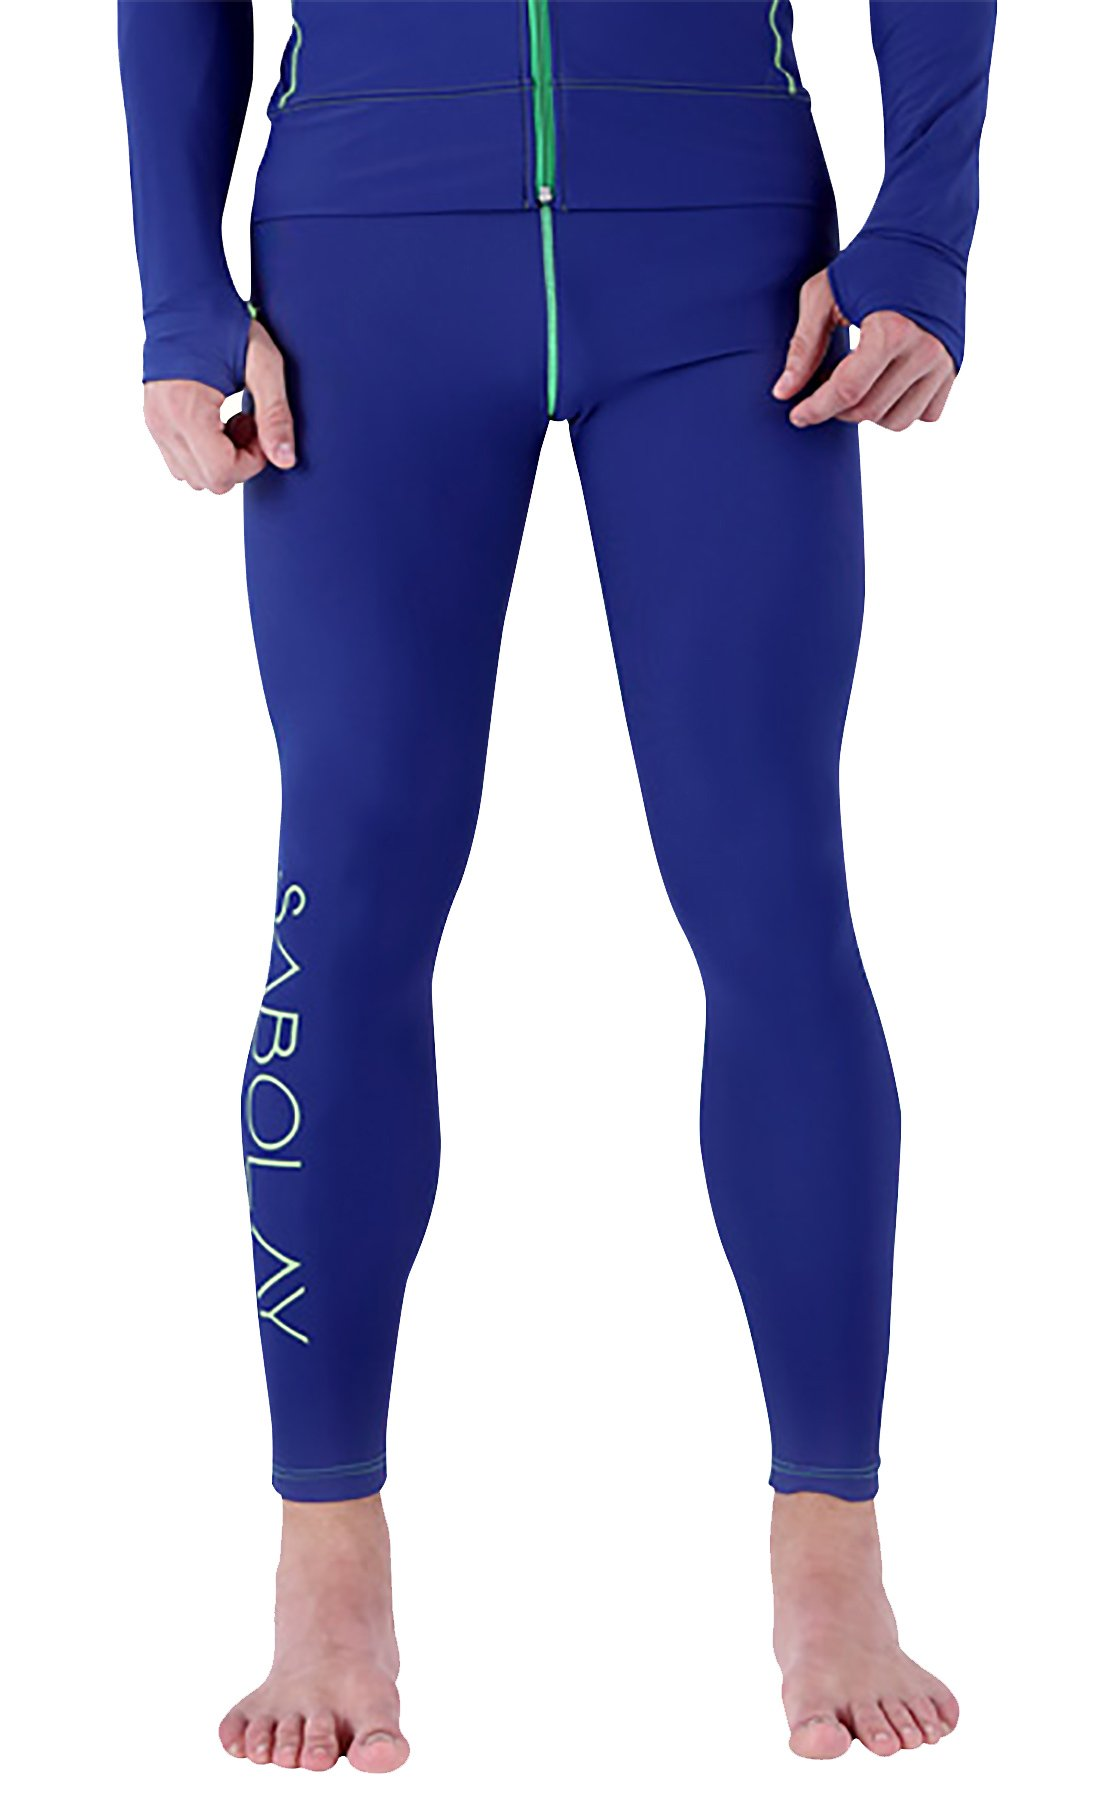 Men Wetsuit Pants Athletic Base Layer Tights for Water Sport Snorkeling Fish Diving Surfing Canoeing L